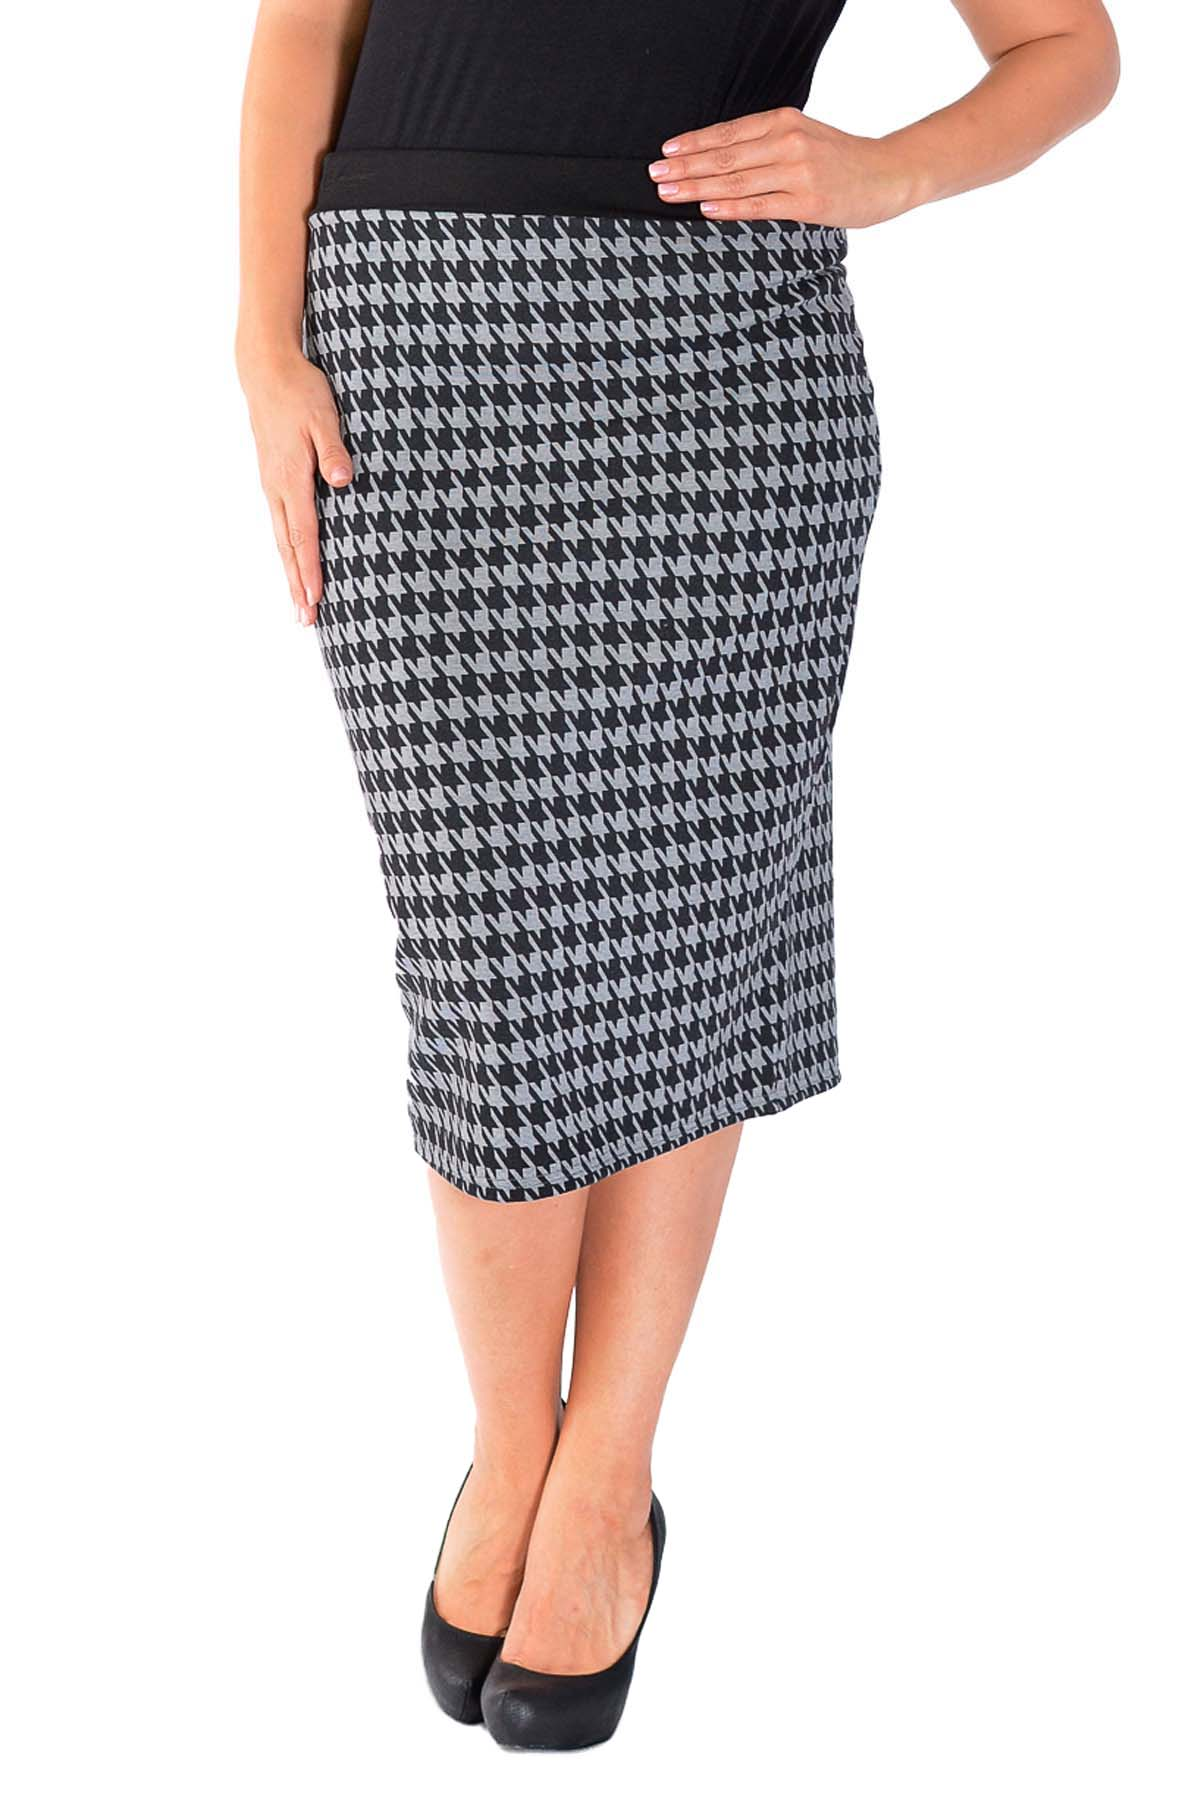 Skirts with Elastic Waist. invalid category id. Skirts with Elastic Waist. Showing 8 of 8 results that match your query. A fitting yet comfortable floral multicolor pencil skirt in a fitted style with a high waisted band. Perfect for casual wear. Sold & Shipped by New MOA Collection.